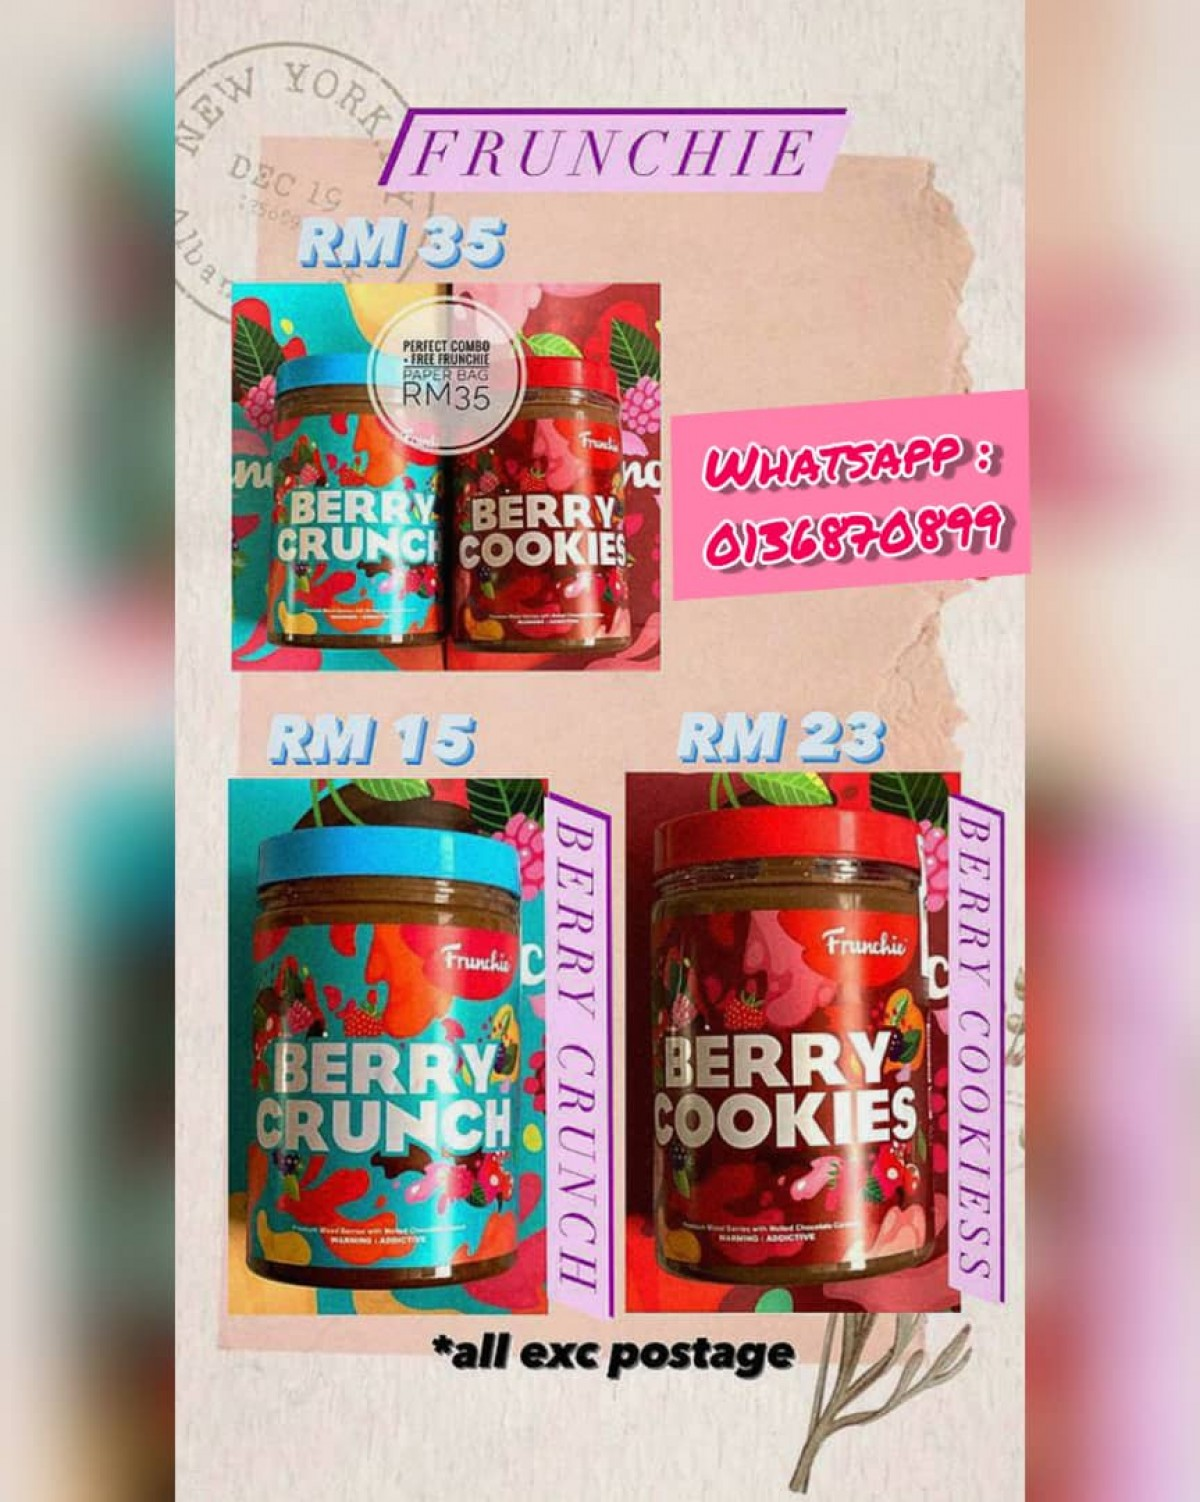 [Preorder] Berry Crunch - Order JER